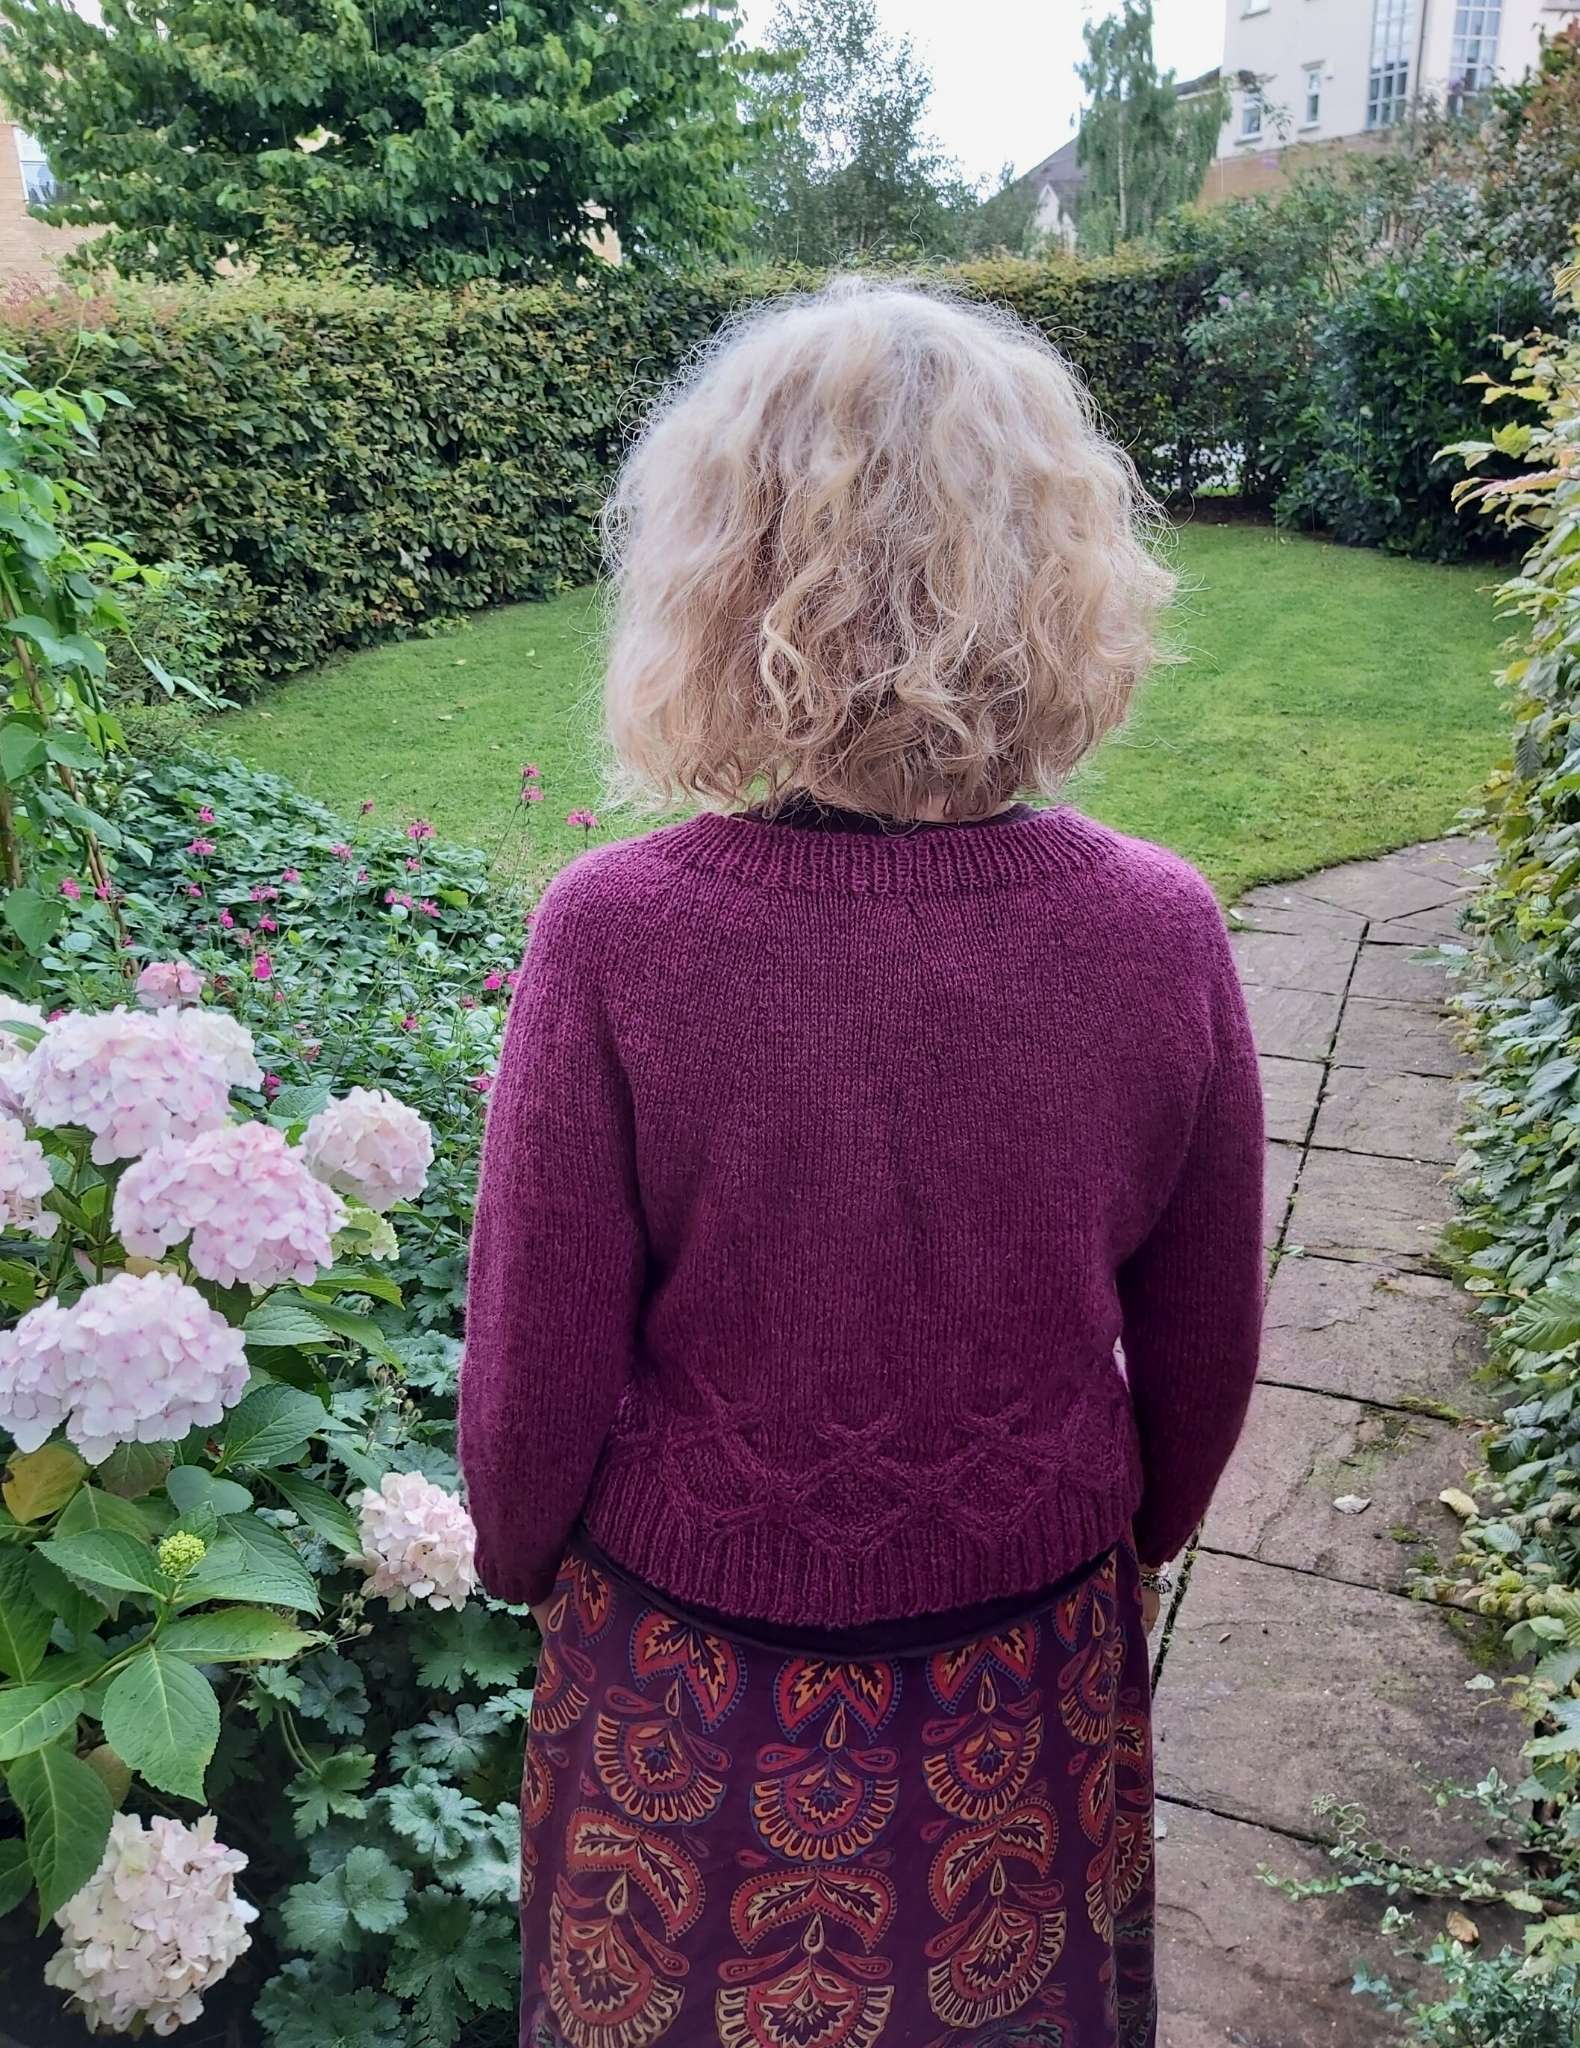 The back of a model standing outdoors wears a purple sweater